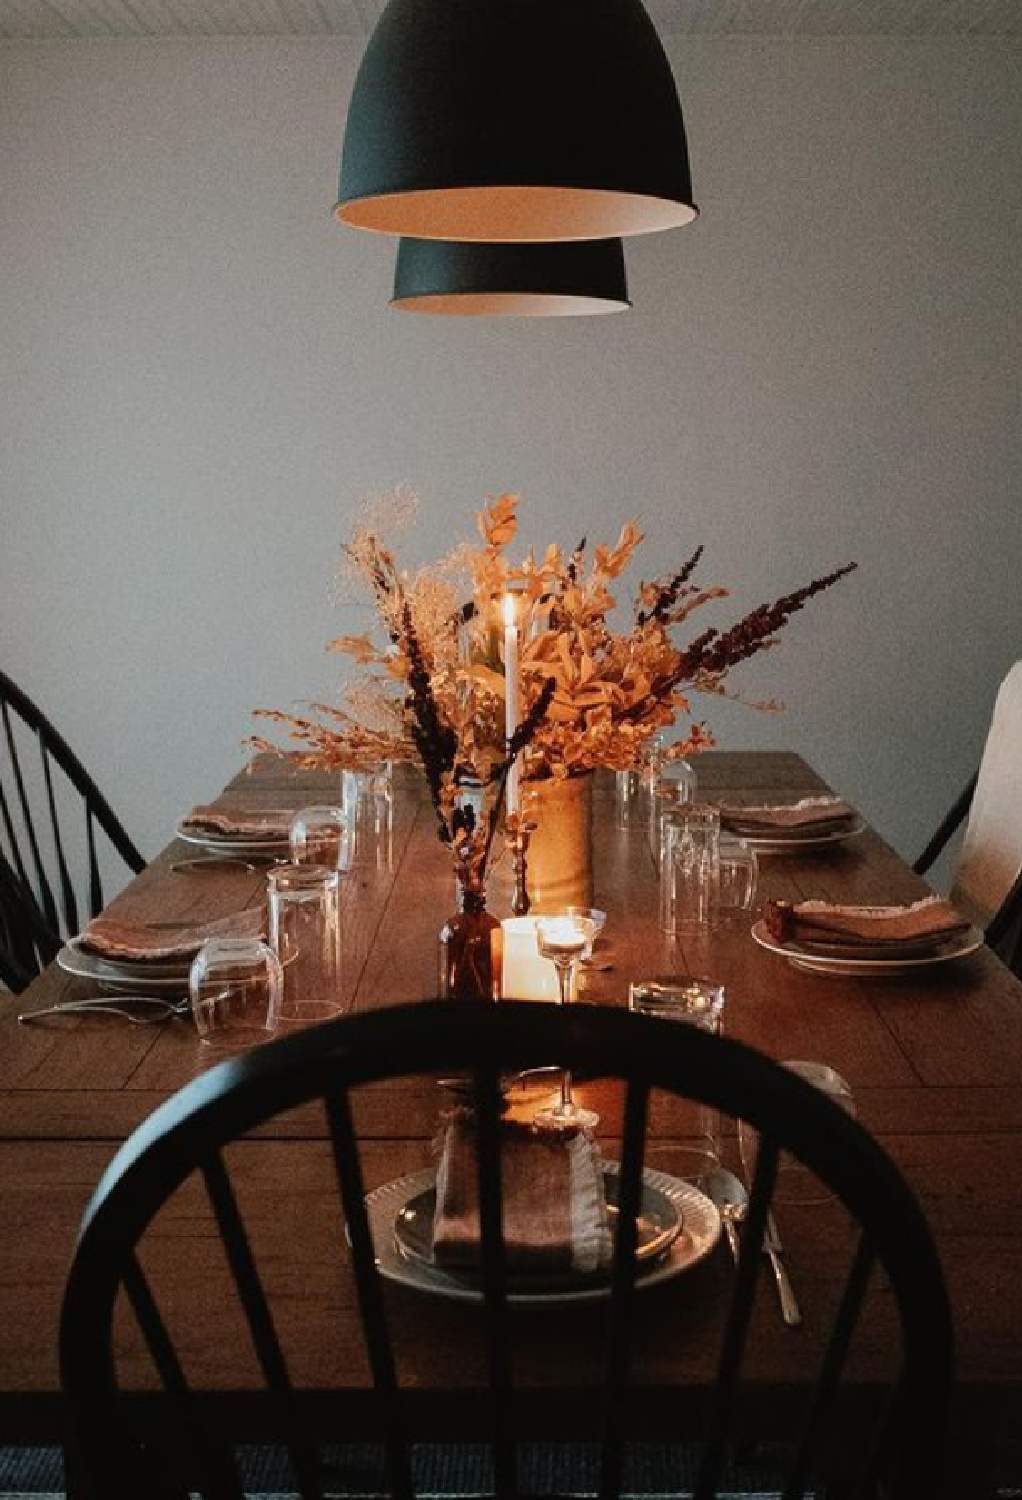 Simple Thanksgiving tablescape with earth tones and black - @houseonhorizon. #thanksgivingtable